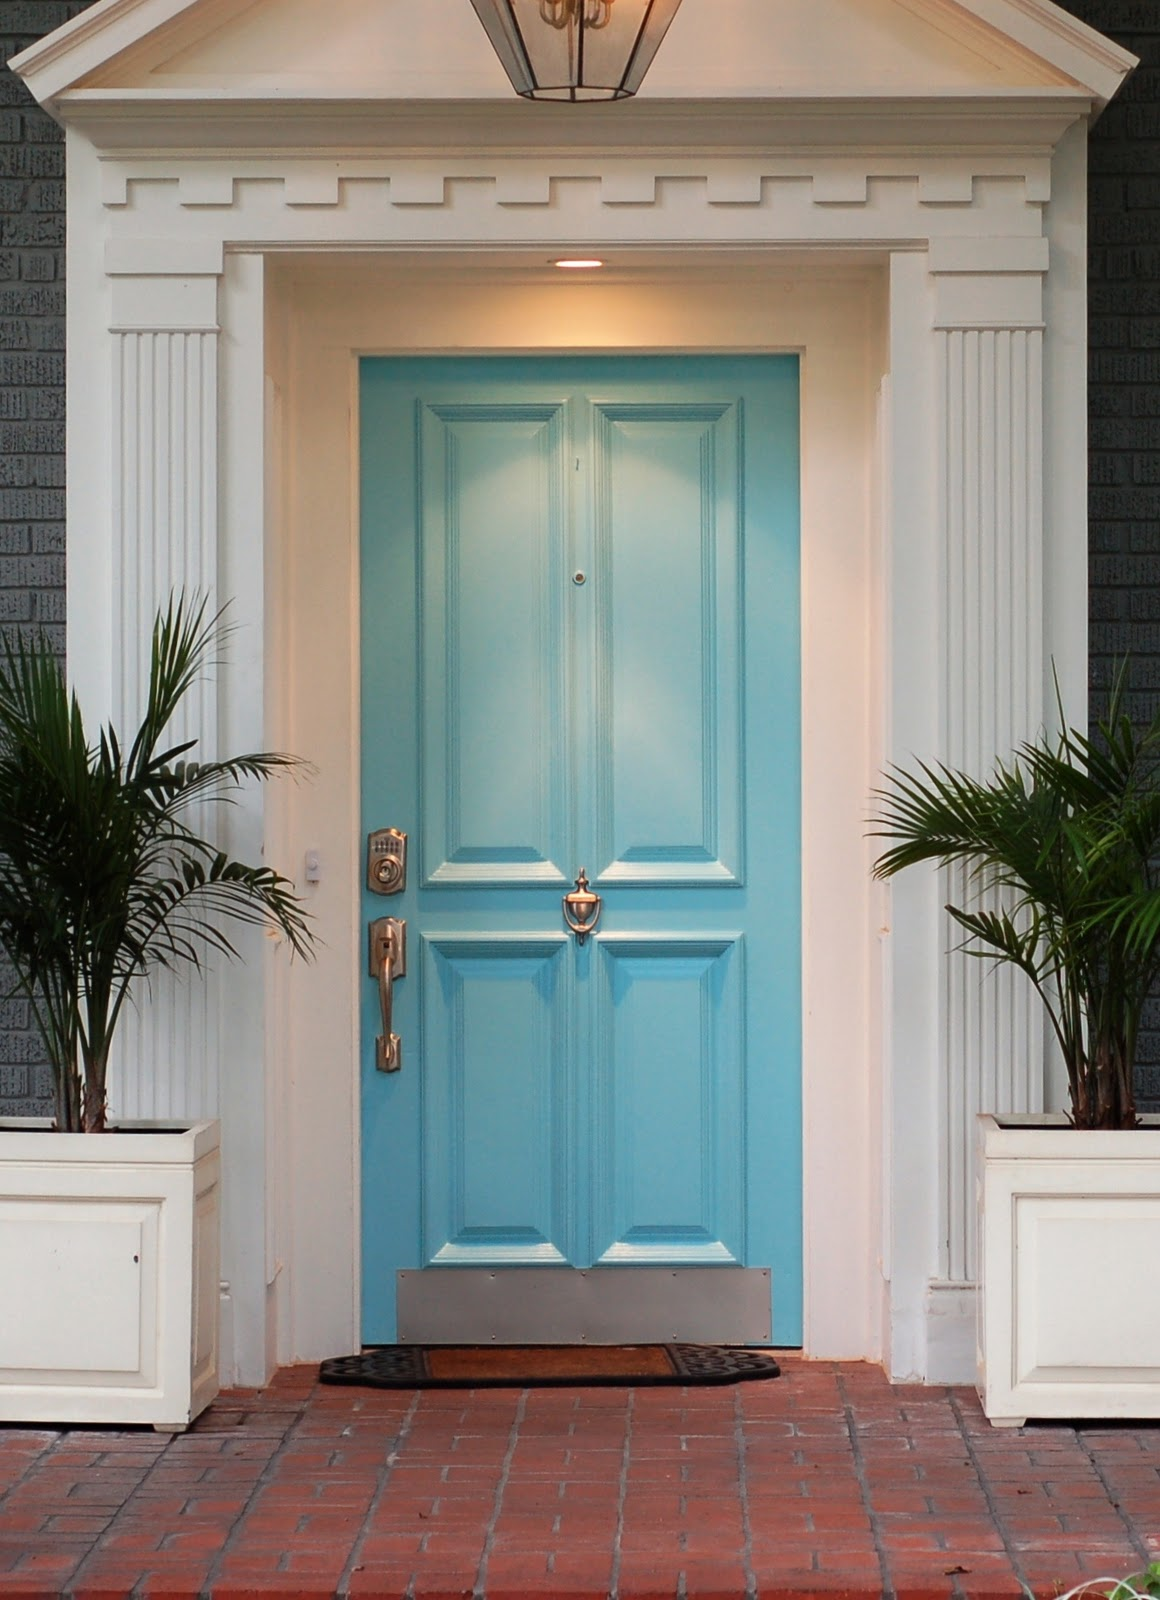 North dallas real estate front door colors to help sell for Small house front door ideas